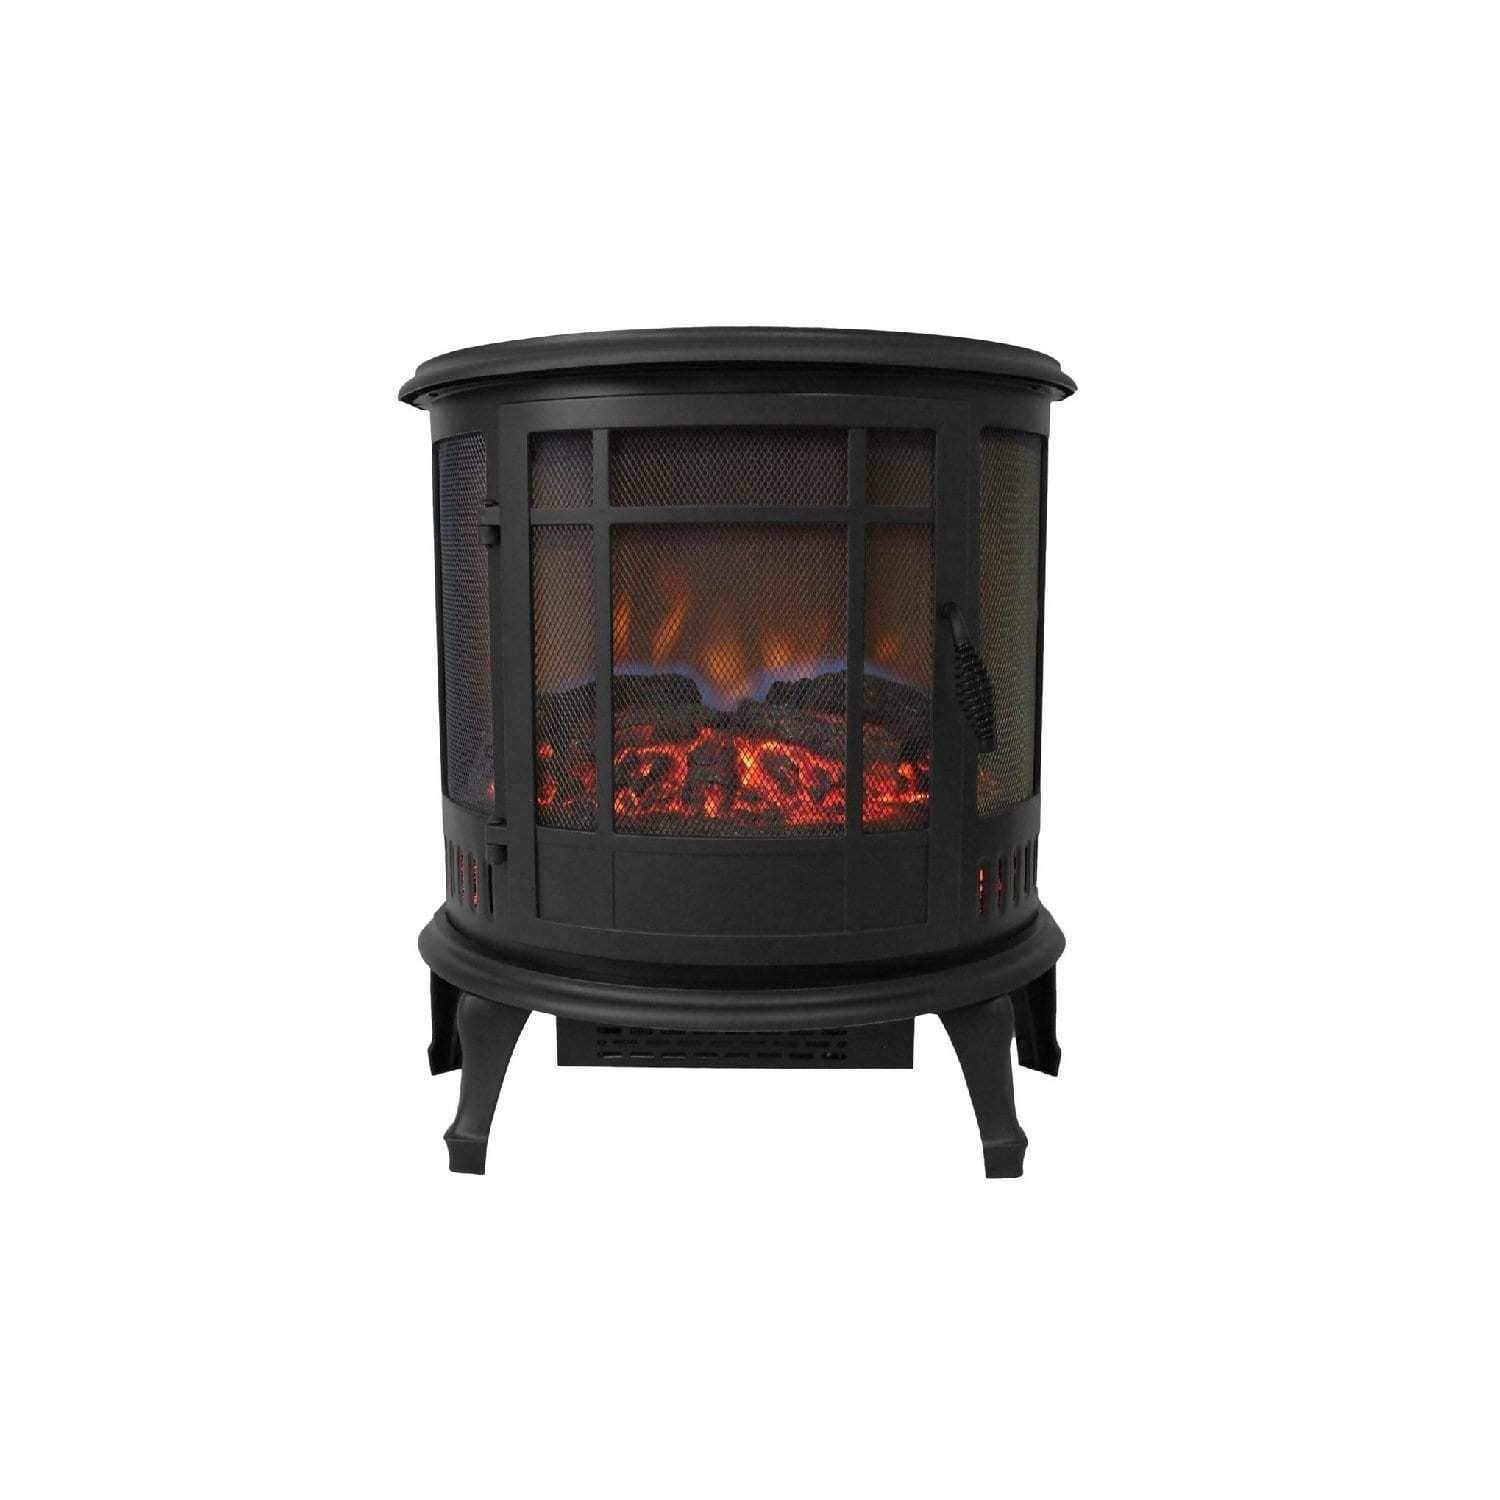 Rabinyod Bulan Comfort Glow The Claremont 3-Sided Viewing Electric Stove, Black by Rabinyod Bulan